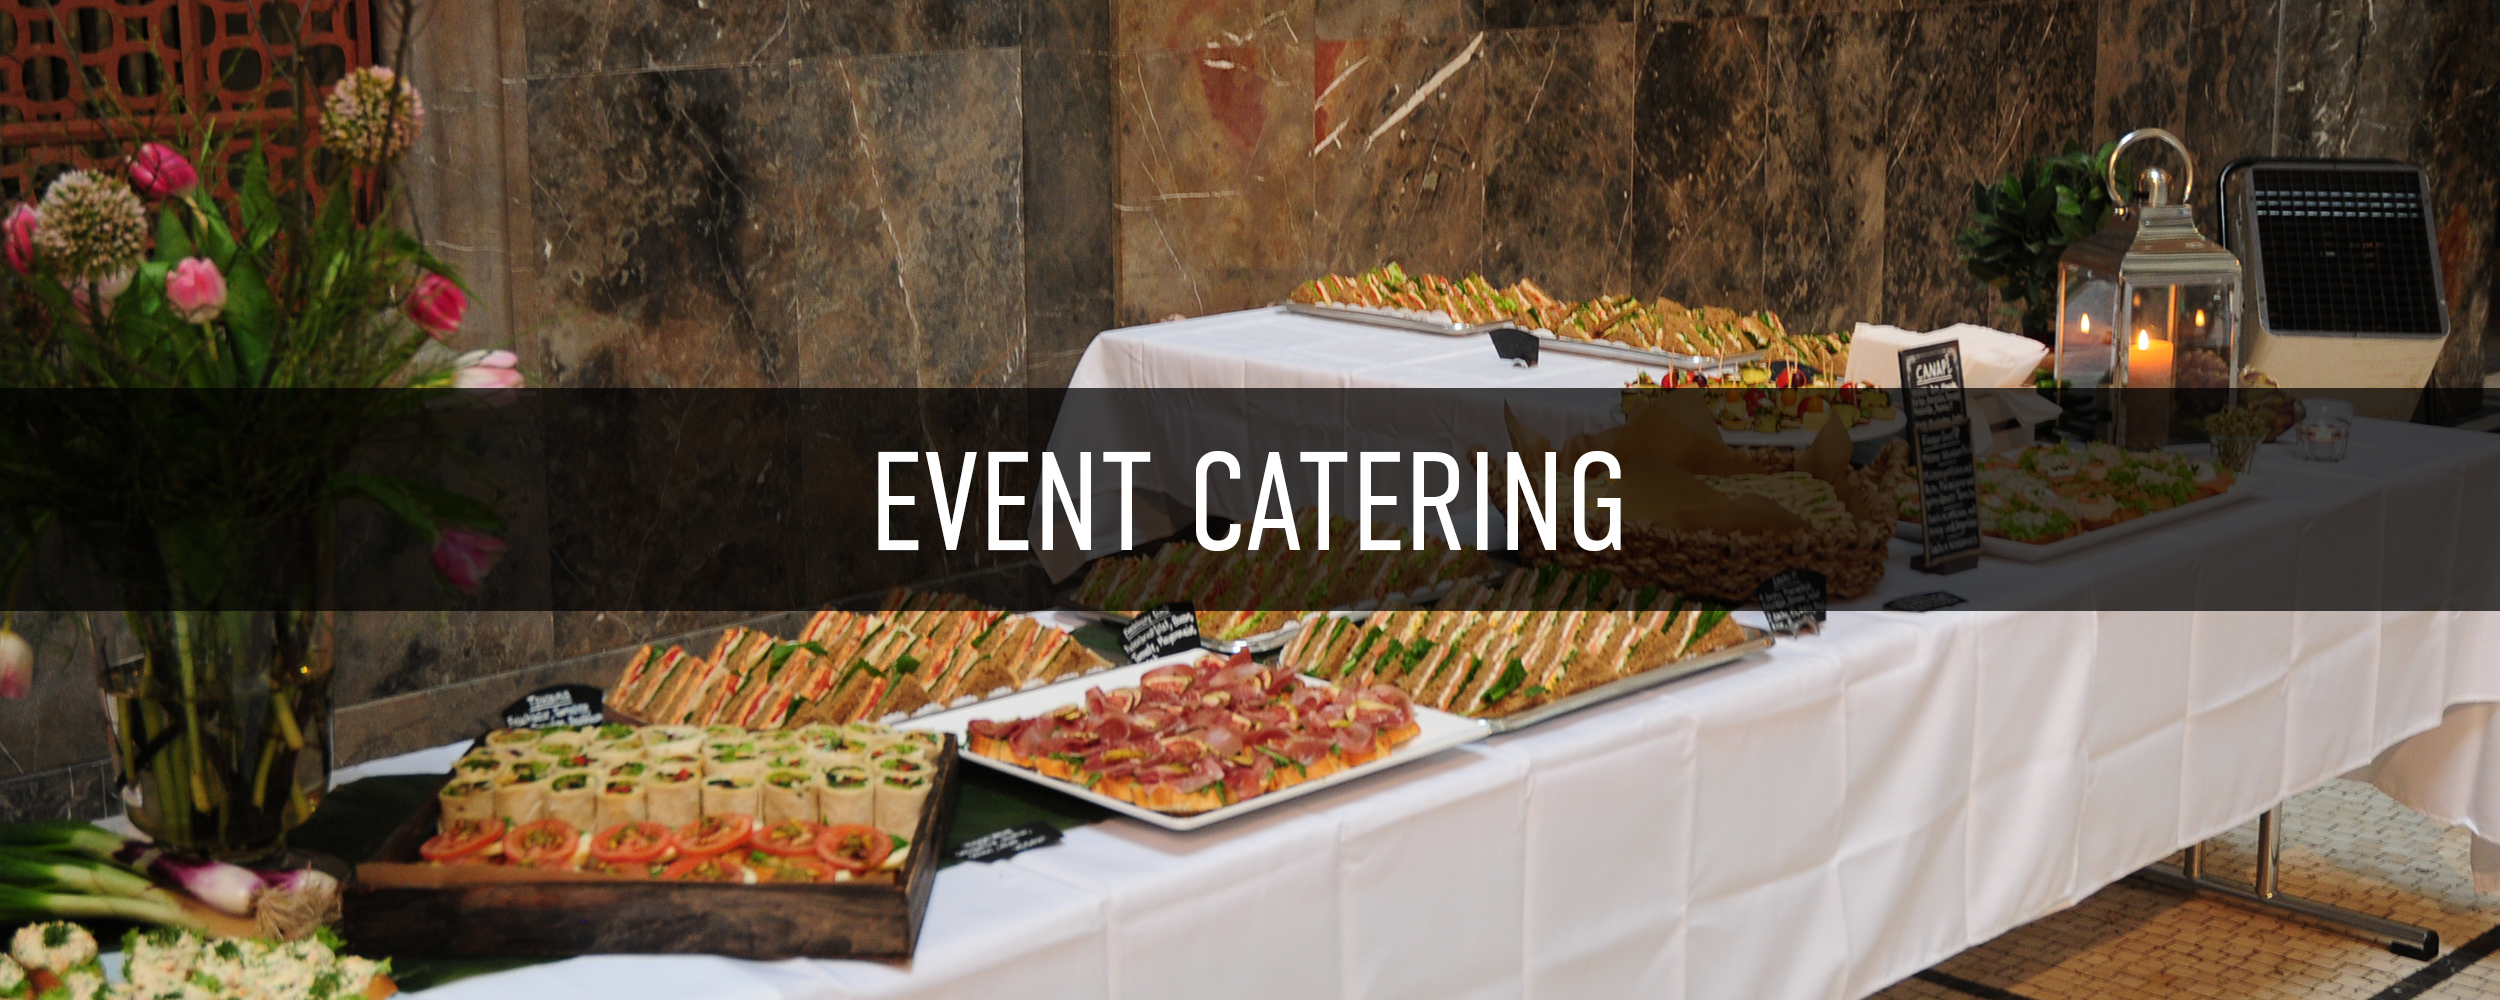 Event Catering.jpg